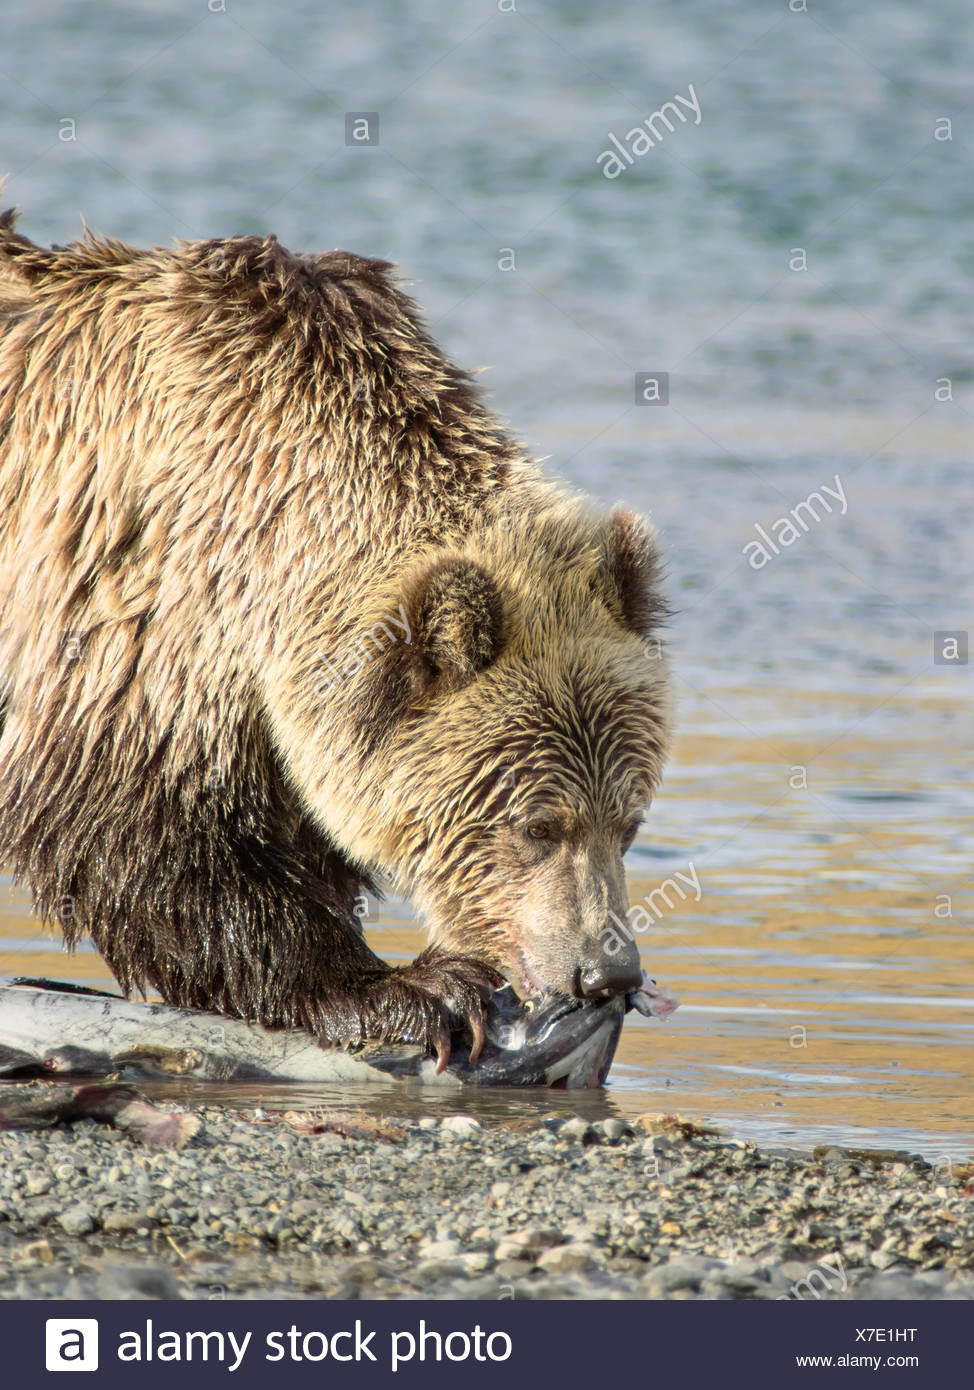 Grizzly Bear (Ursus arctos horribilis), Adult, on waters edge of a salmon stream with Spring (Chinook, Tyee, King) Salmon (Oncorhynchus tshawytscha), Central British Columbia, Canada - Stock Image